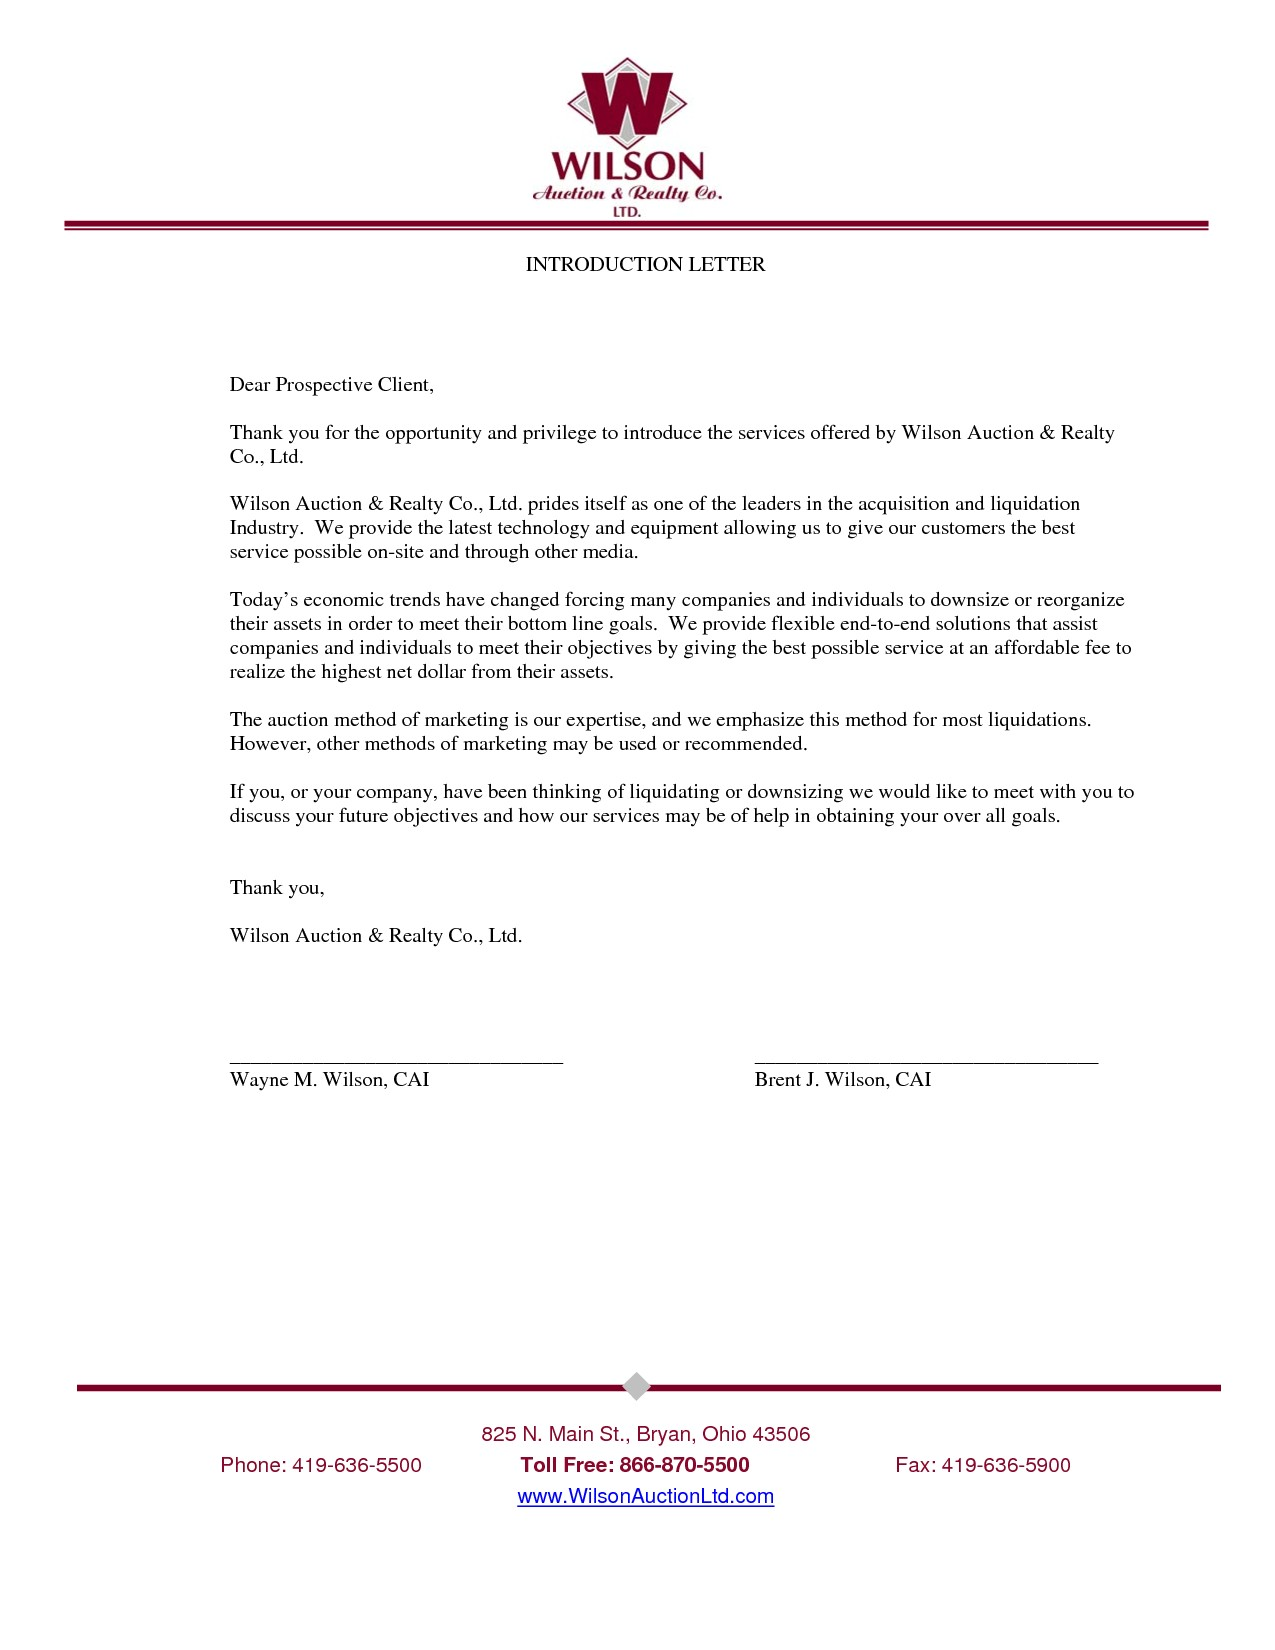 Sample Of Introduction Letter For A Company Inspirationa New